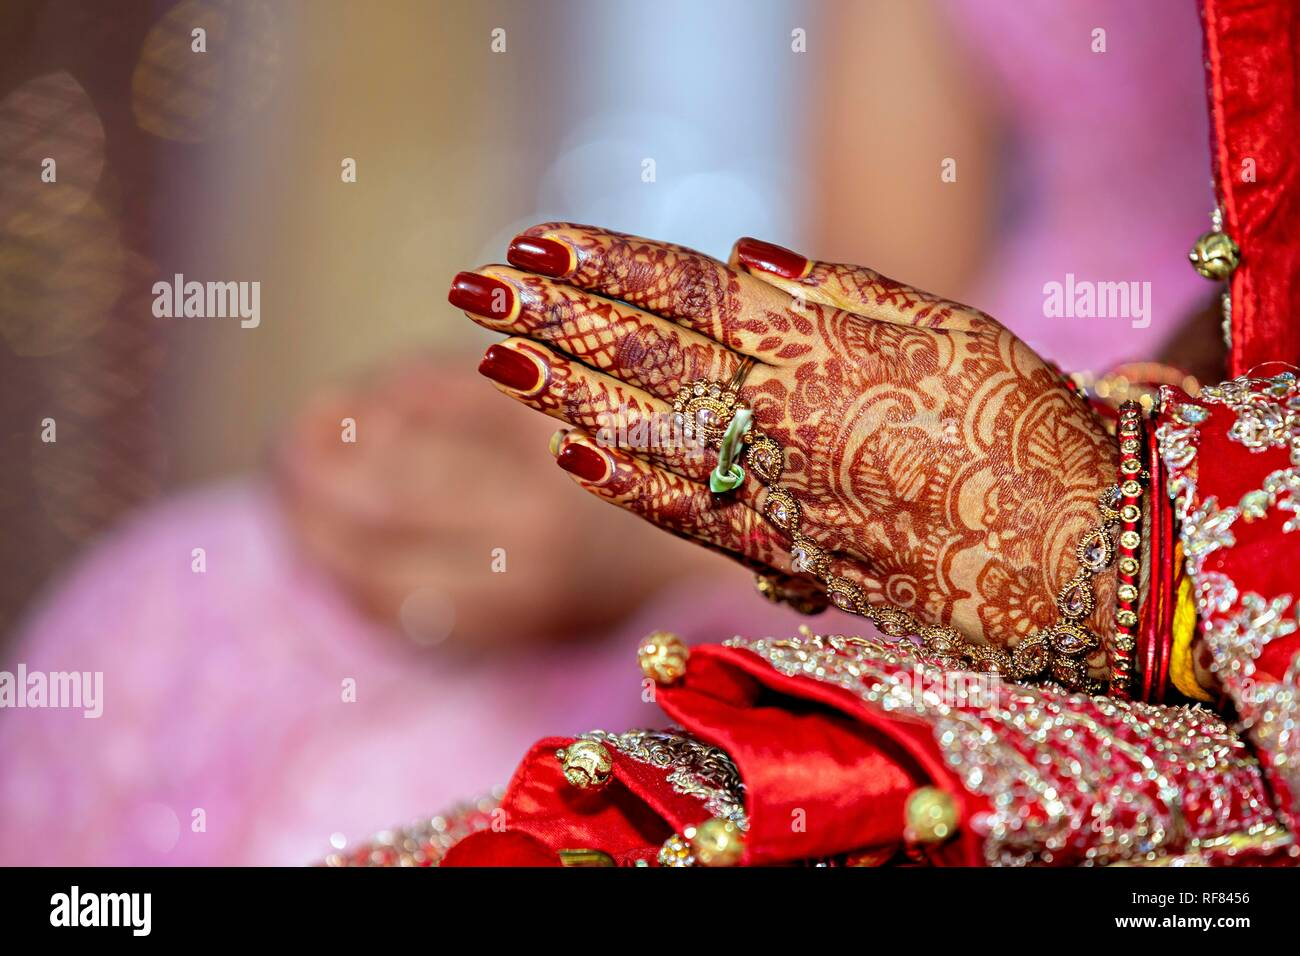 Traditional bridal jewelry and henna decoration on the hands of the bride during a religious ceremony at a Hindu wedding Stock Photo